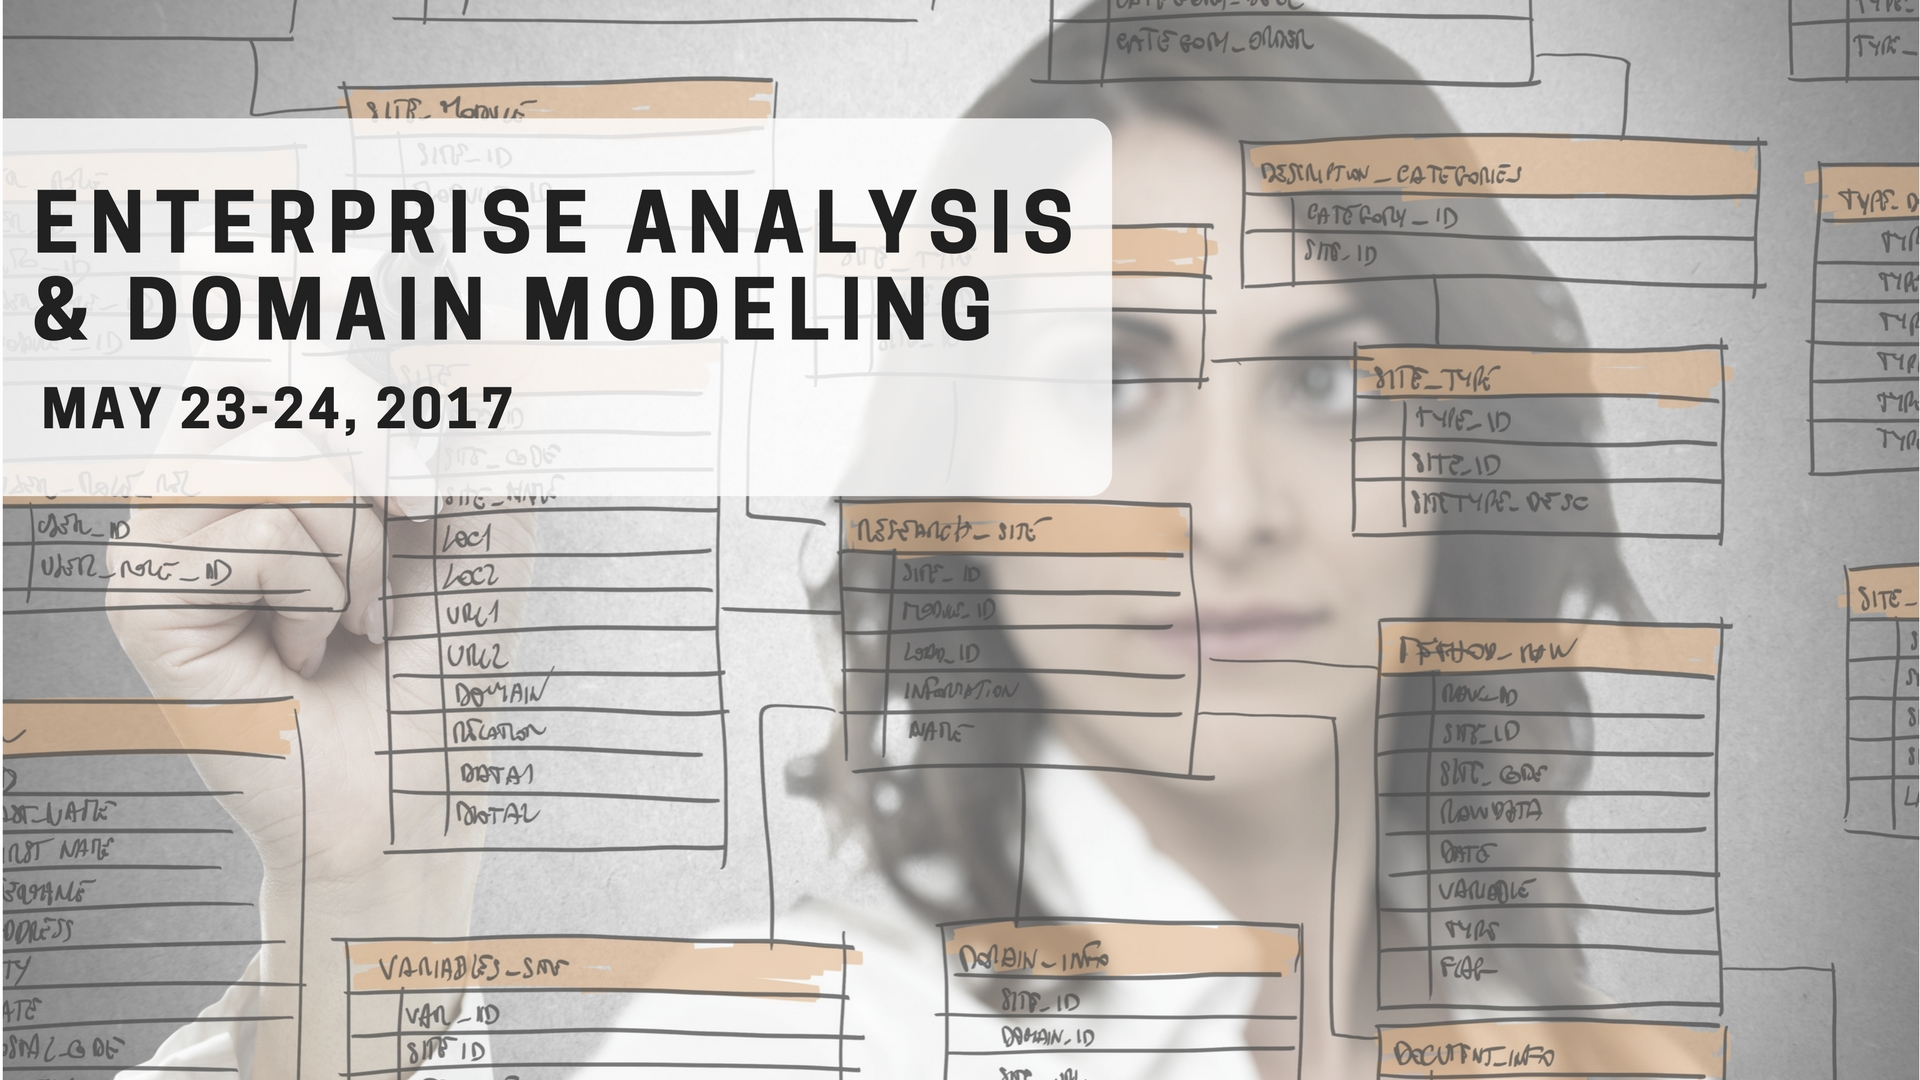 ENTERPRISE ANALYSIS AND DOMAIN MODELINGS